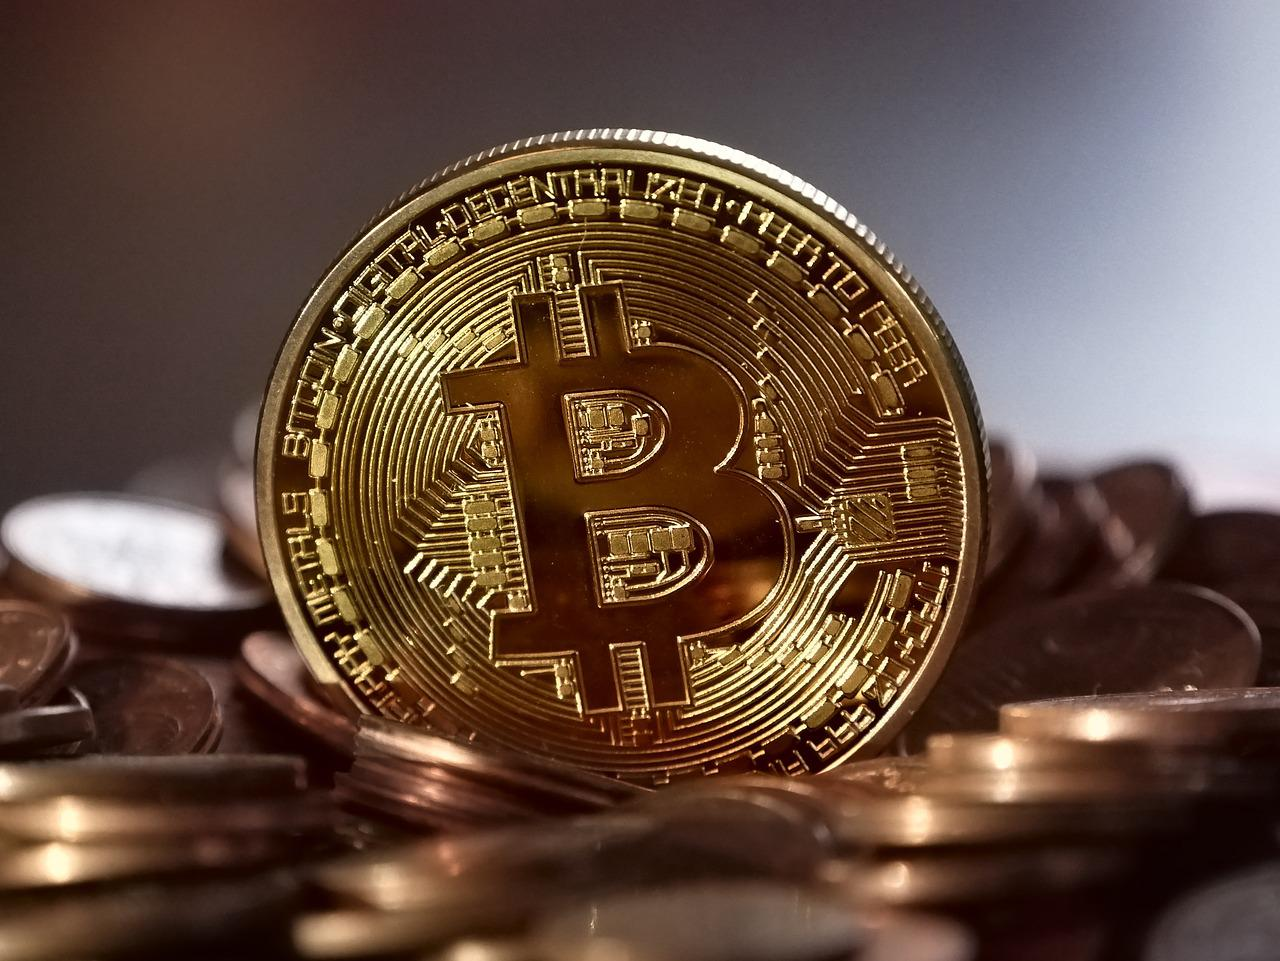 Bitcoin munt cryptocurrency via blockchain technologie